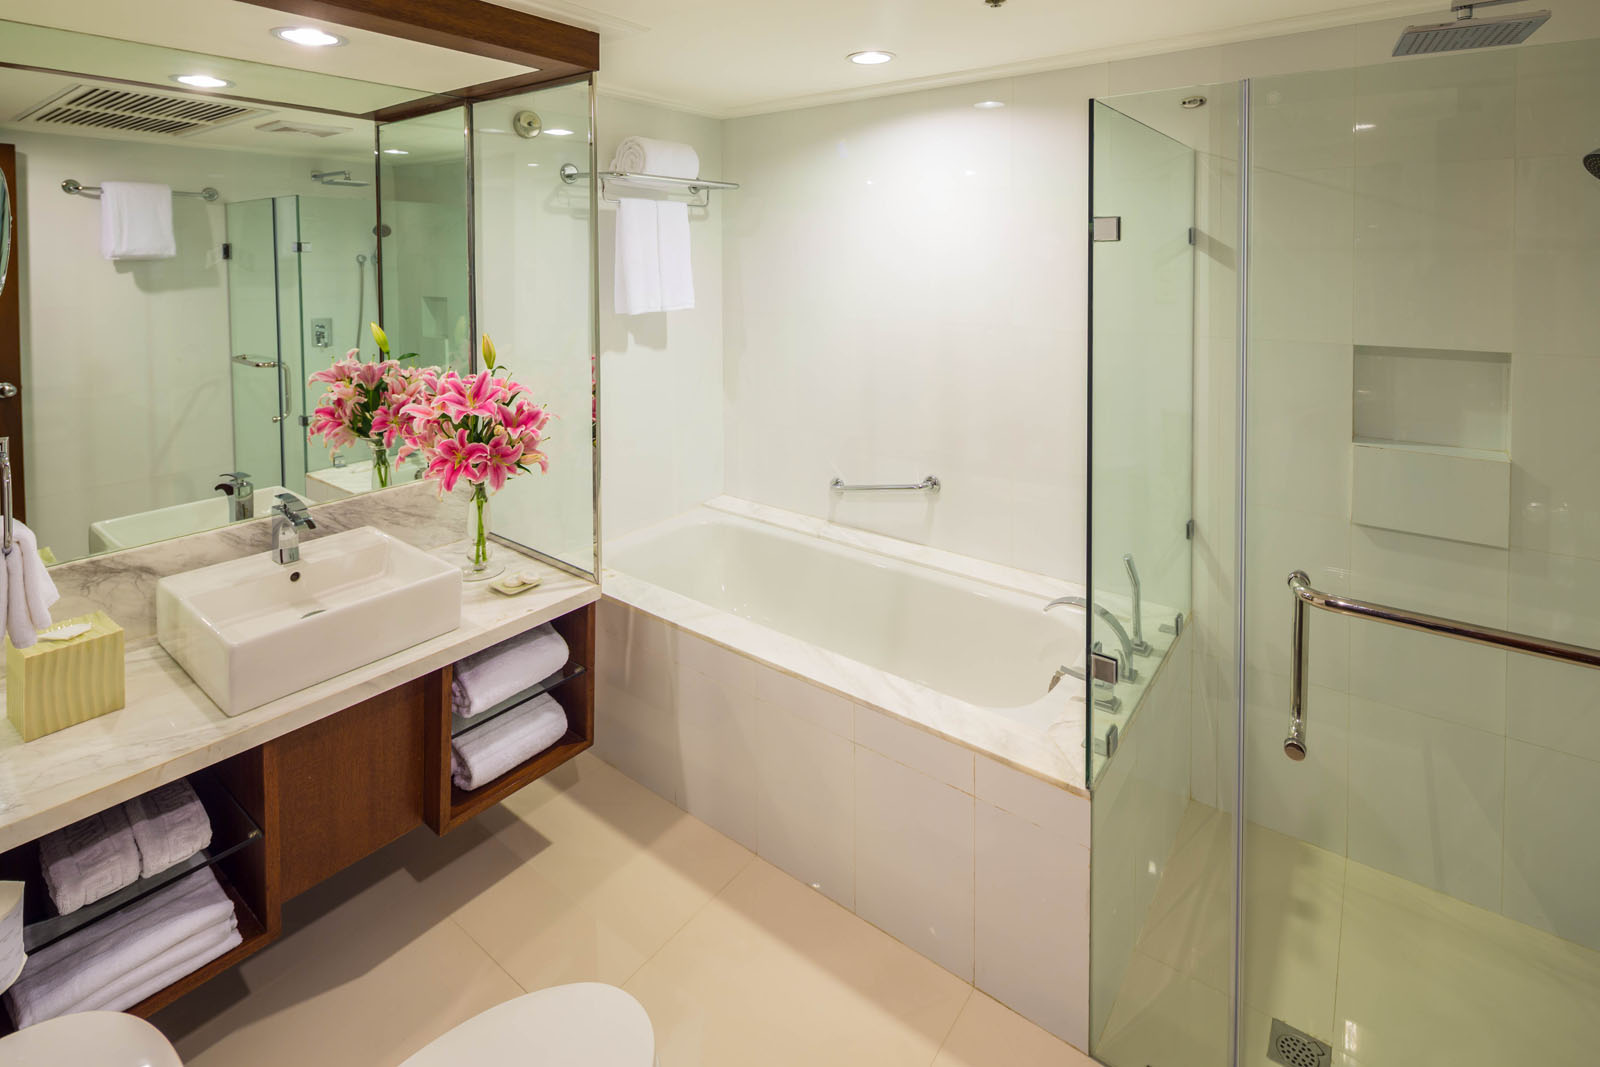 Bathroom at Ortigas Center Apartments